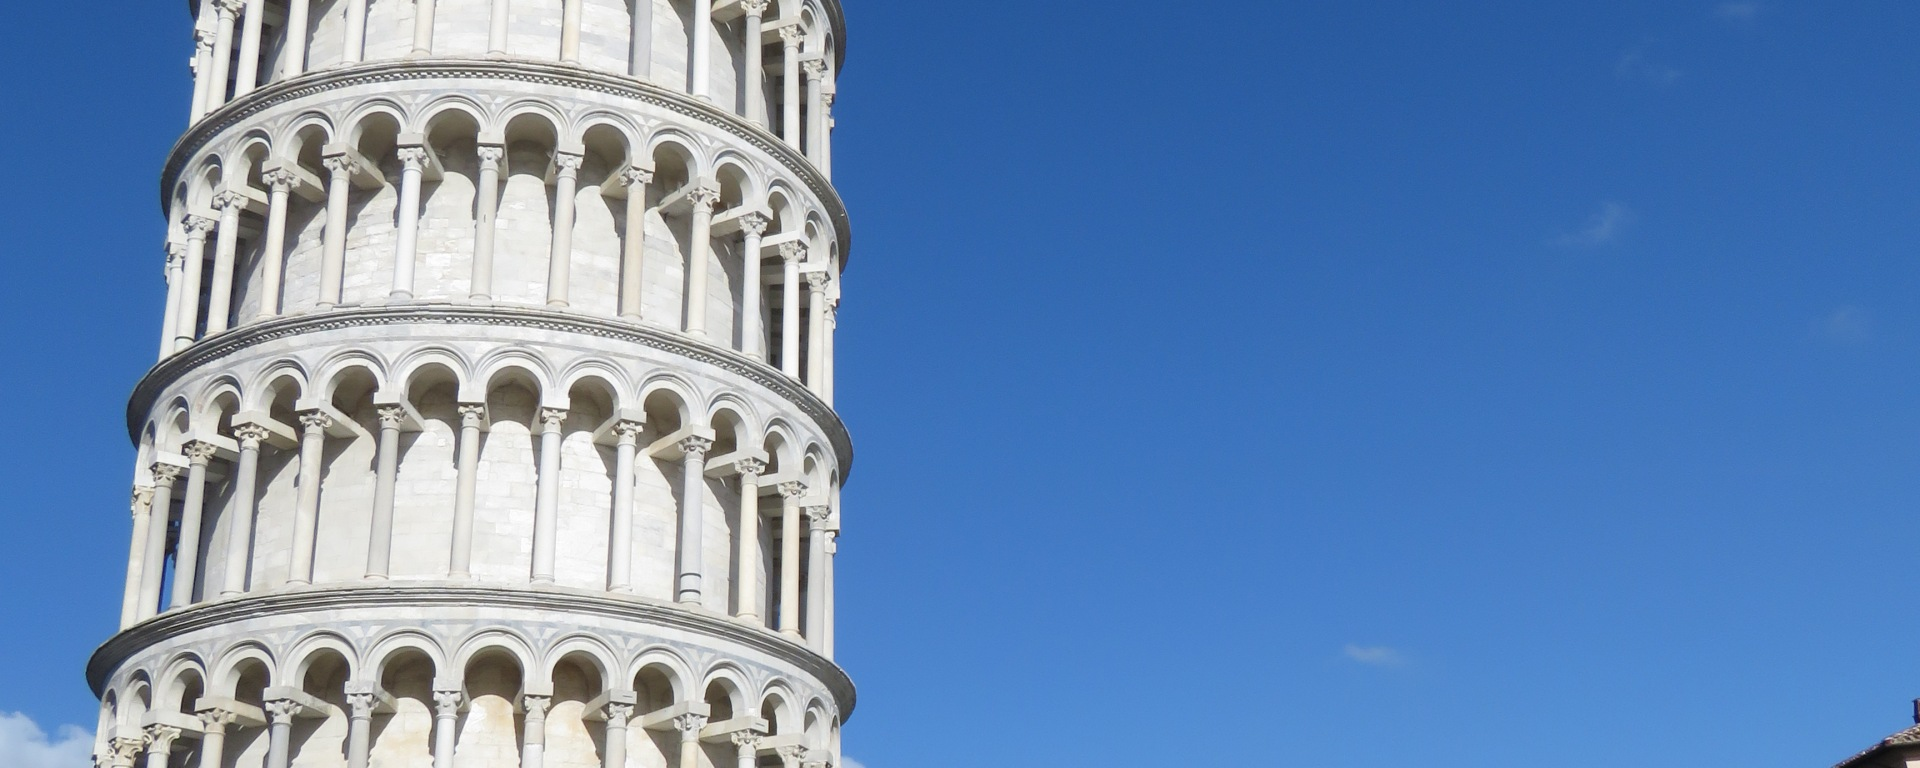 There it is - Leaning Tower of Pisa, Italy - by Anika Mikkelson - Miss Maps - www.MissMaps.com